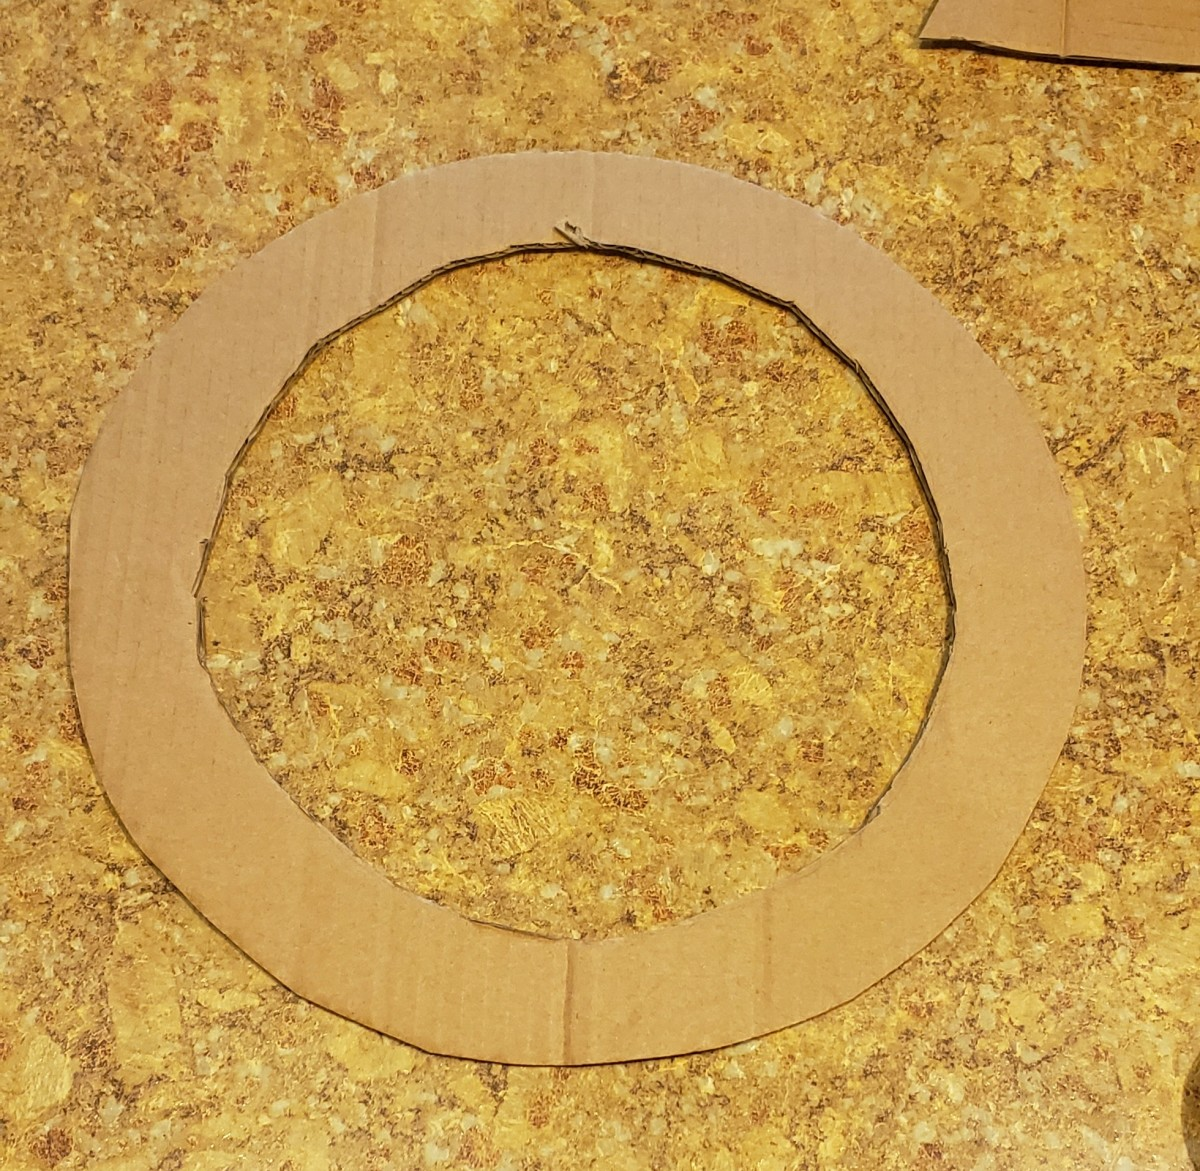 Cut a smaller circle in the center leaving 1 1/2 to 2 inches of cardboard around your circle.